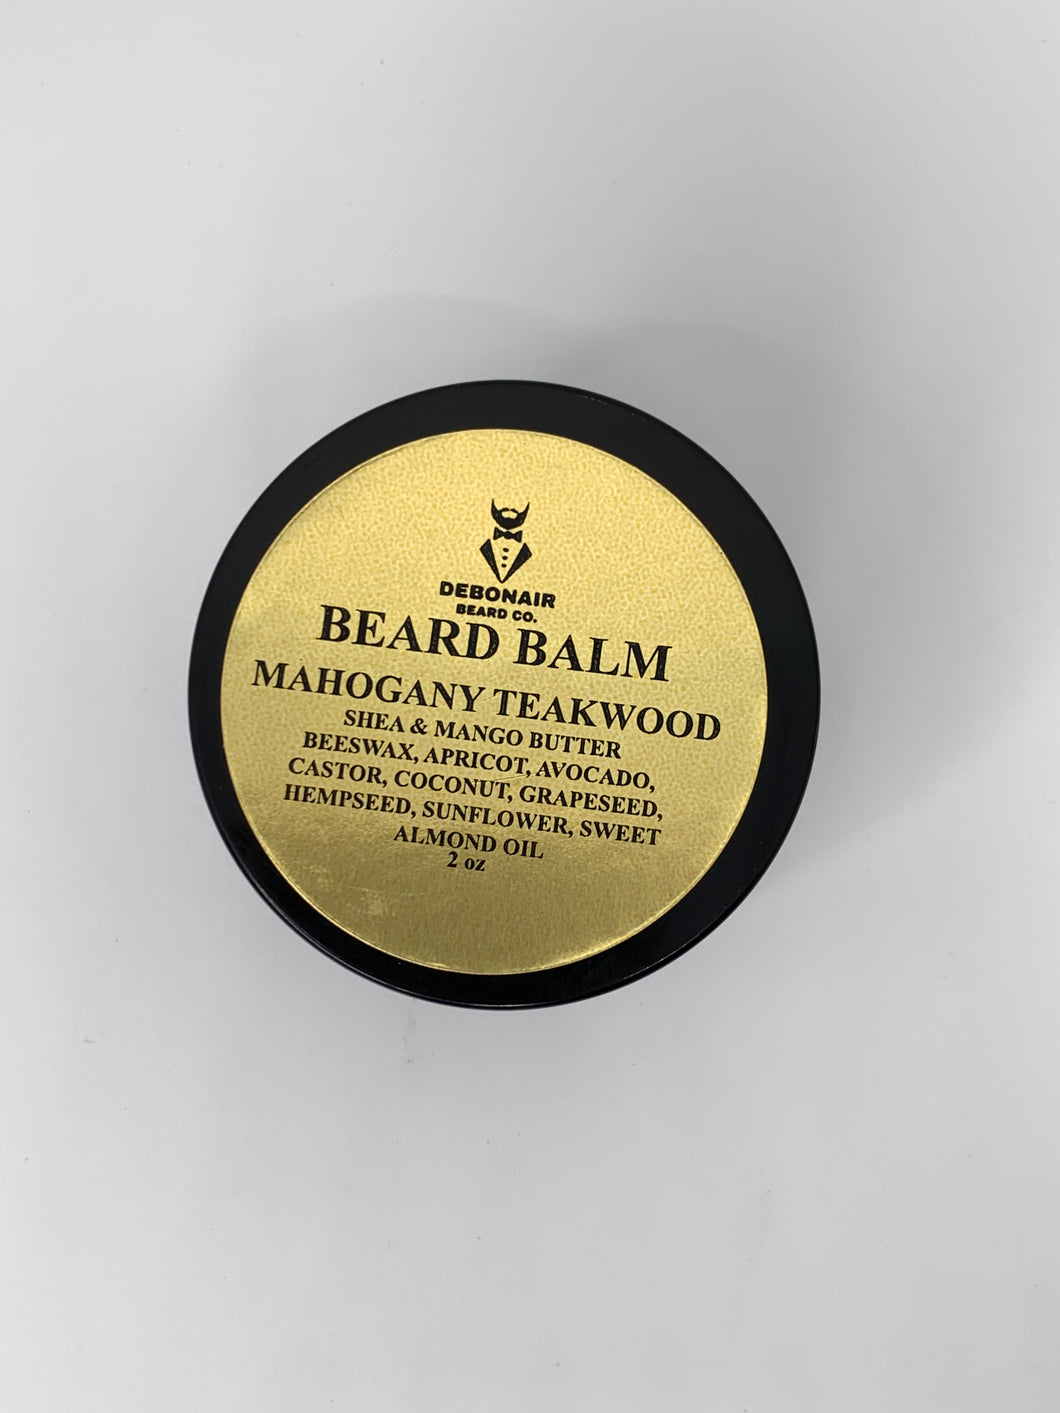 Debonair Beard Co Beard Balm 2oz